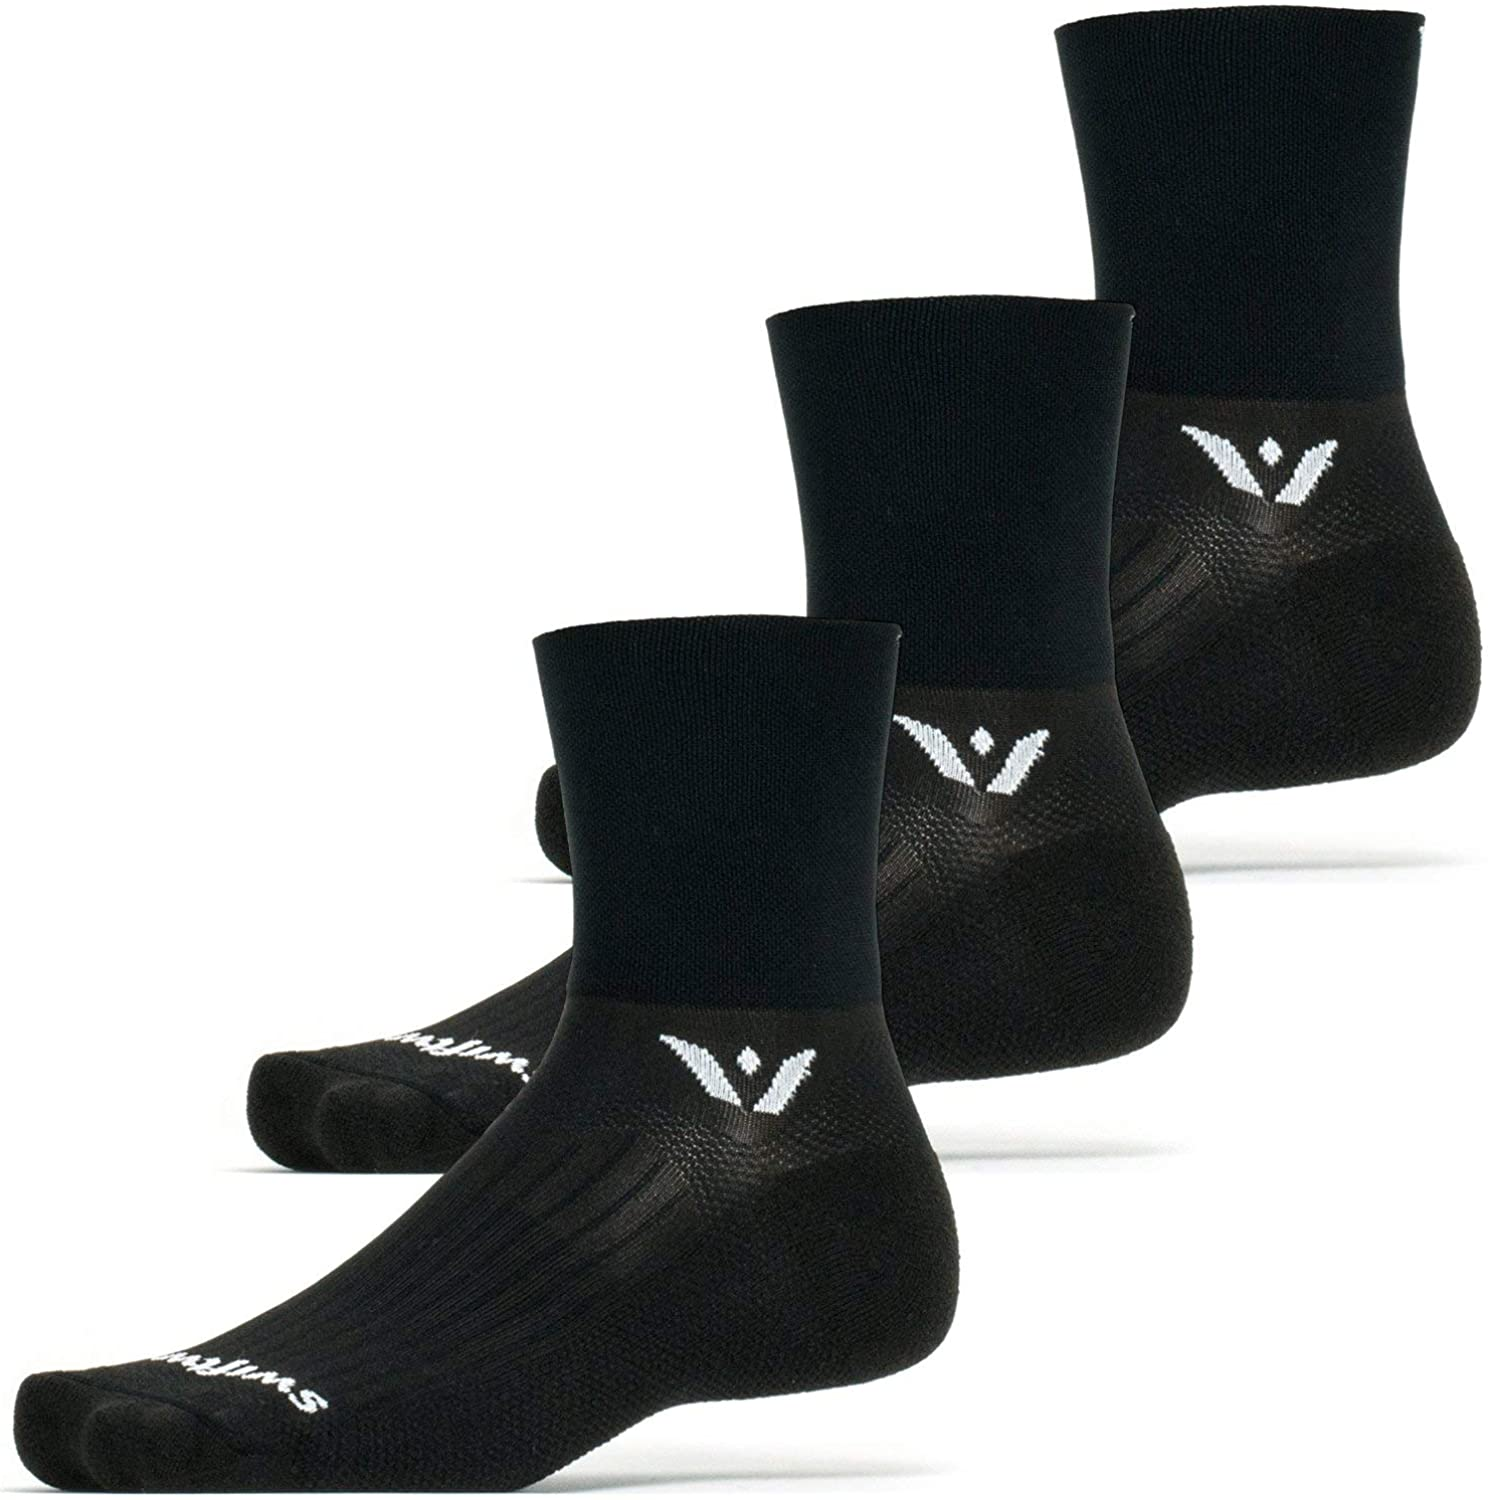 Compression Fit Swiftwick- ASPIRE FOUR Cycling /& Trail Running Socks 3 Pairs